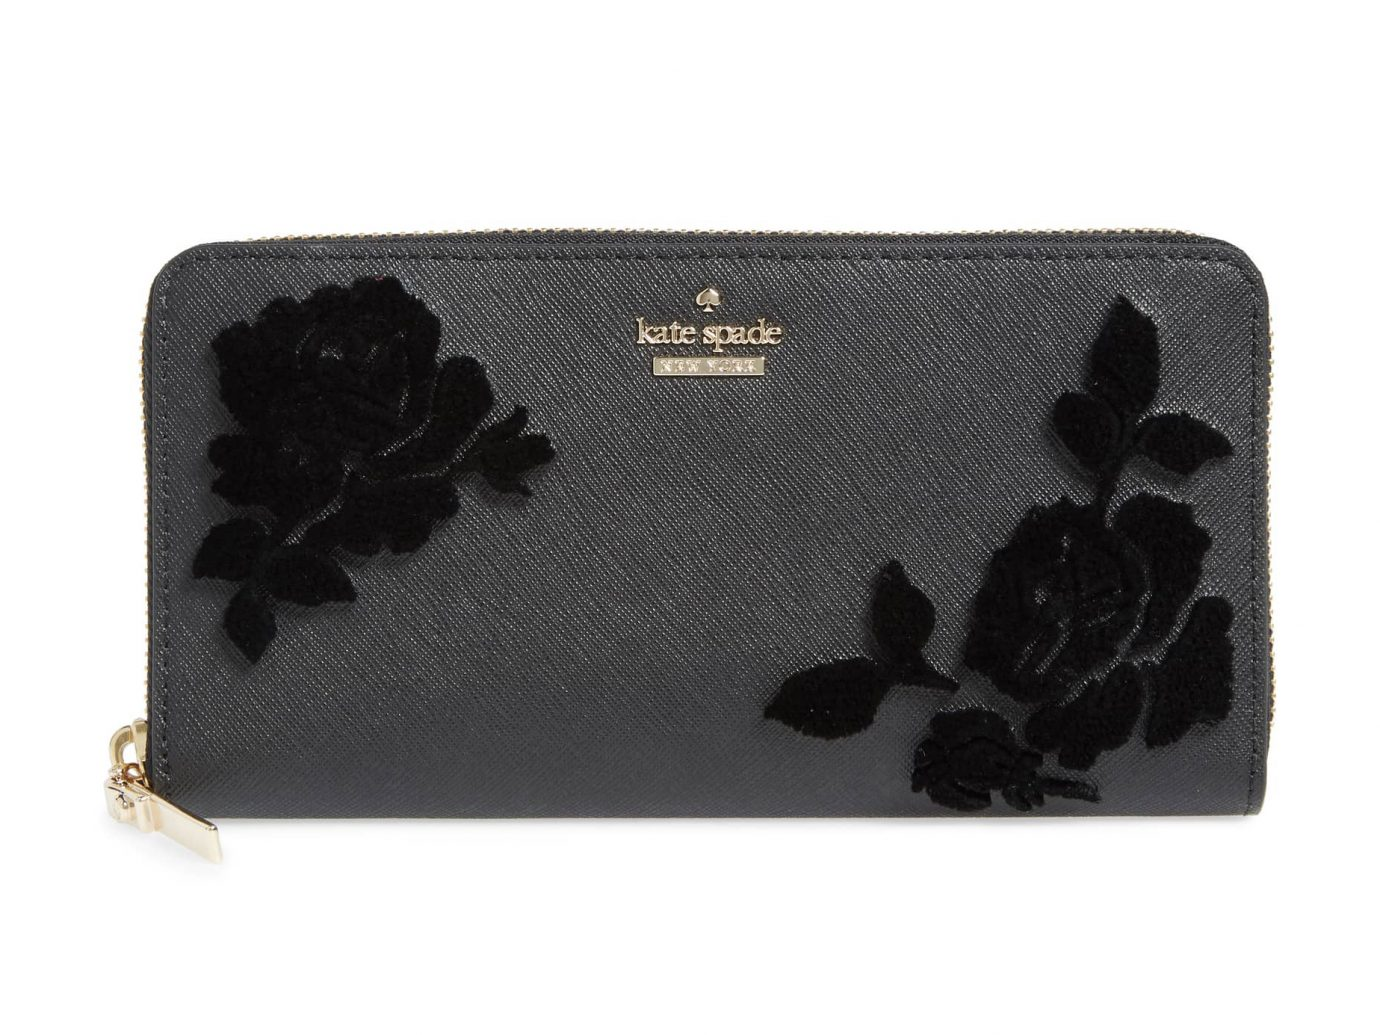 Cameron Street flock roses lacy wallet Kate spade